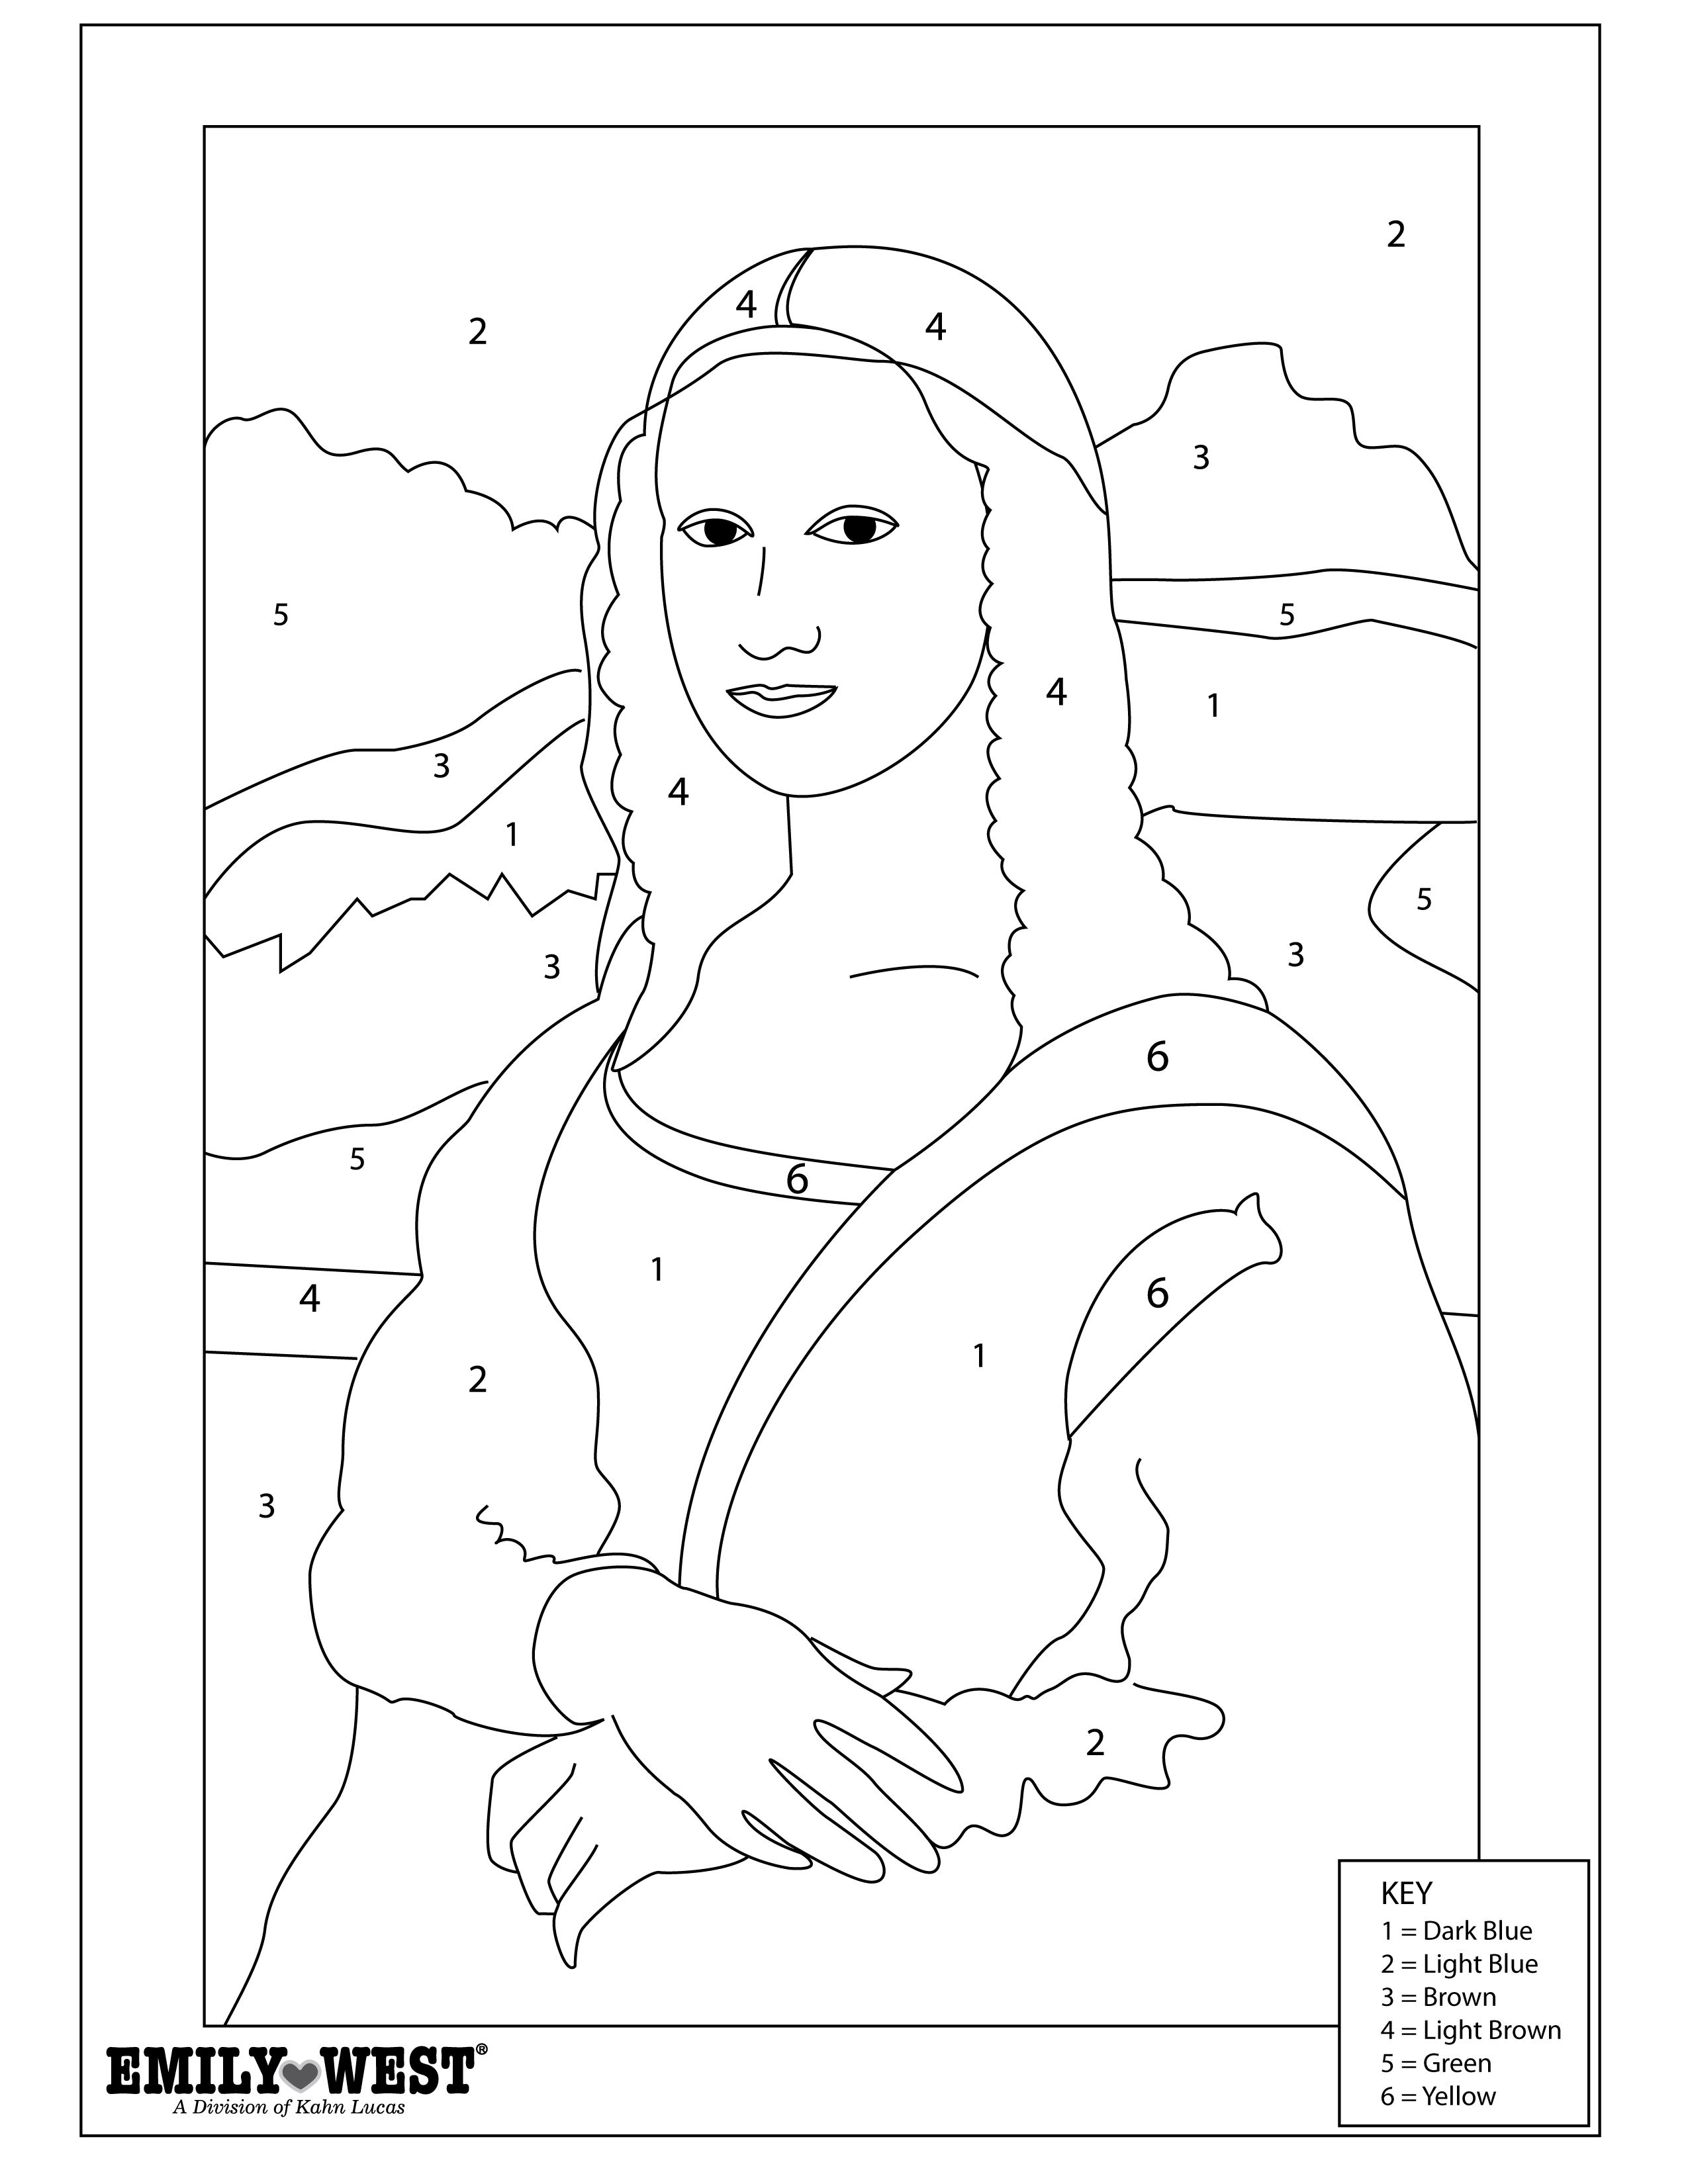 Mona Lisa Coloring Page 4 Ituniverse Ltd